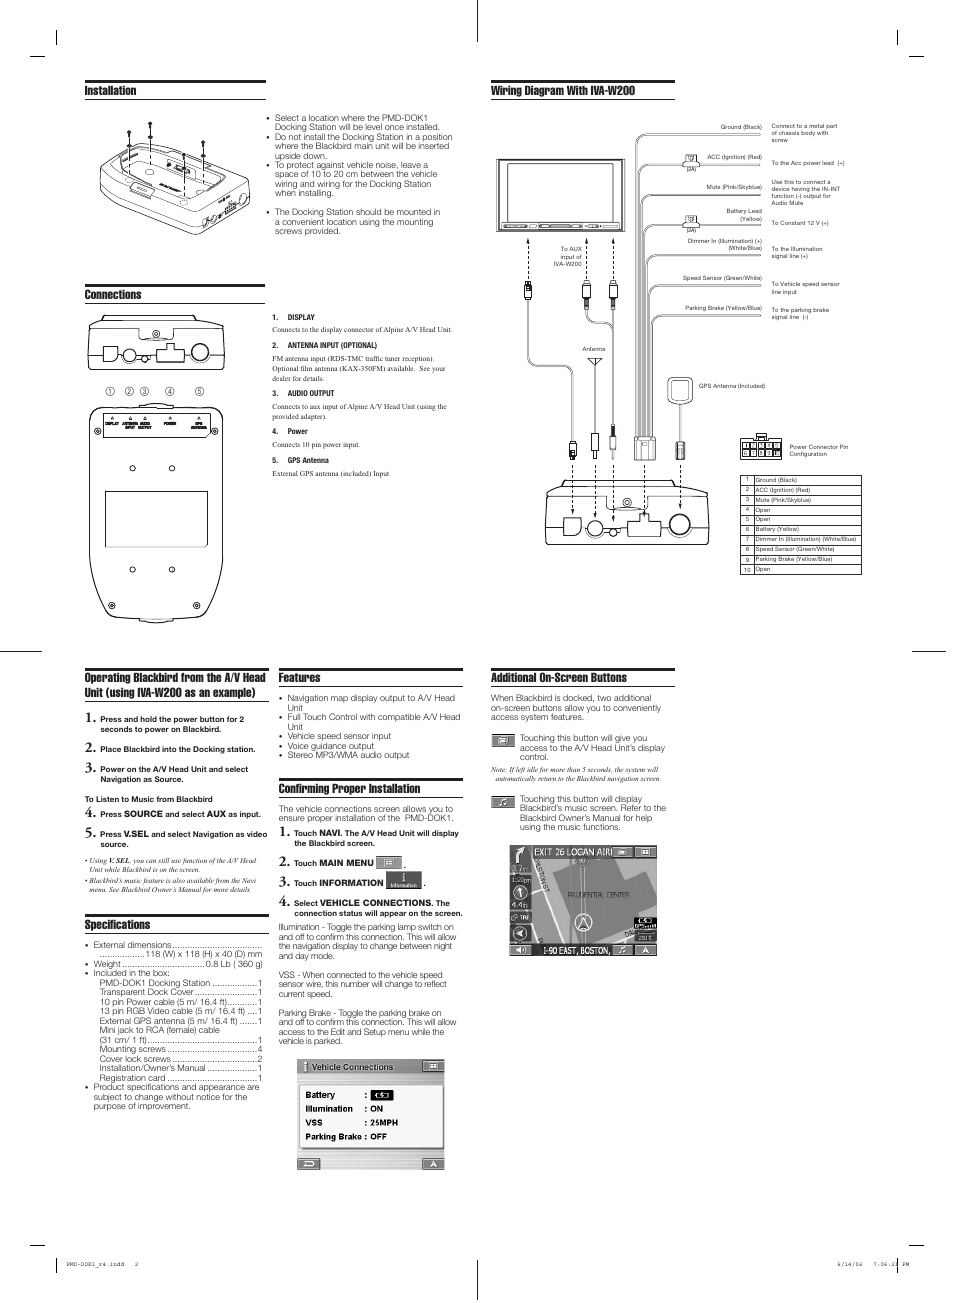 hight resolution of connections wiring diagram with iva w200 specifi cations installation additional on